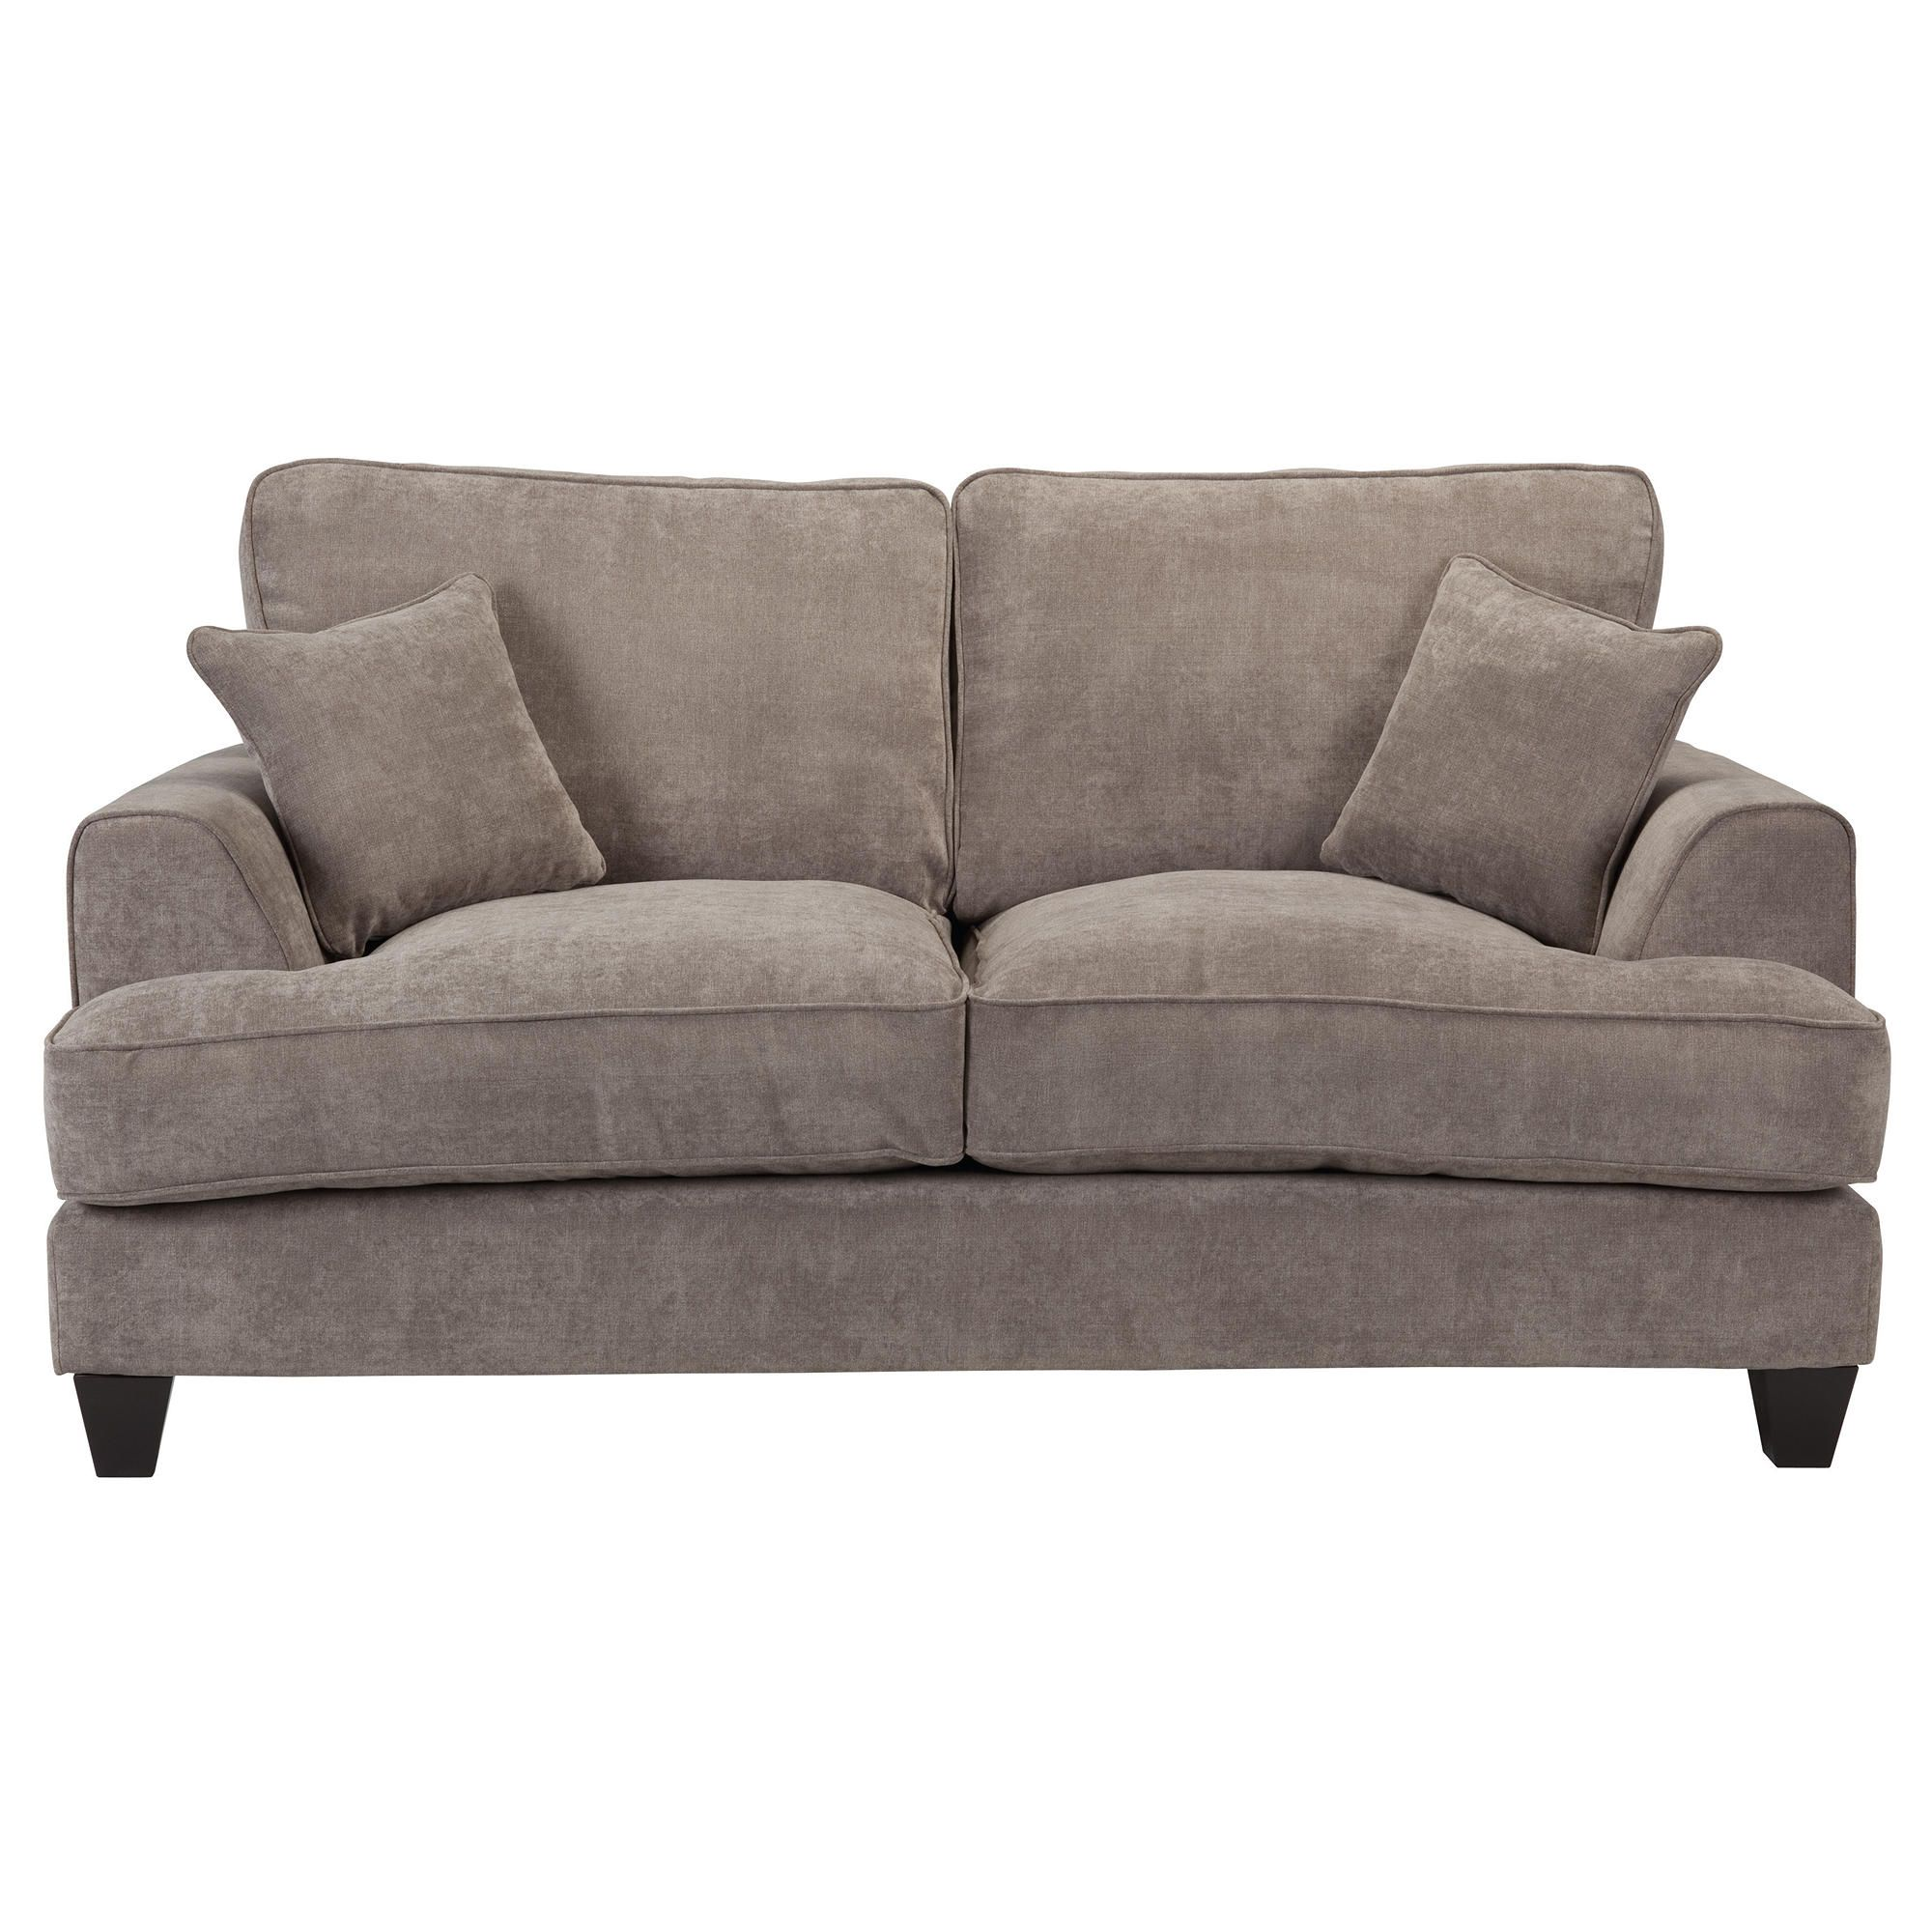 Kensington Fabric Small Sofa Grey at Tesco Direct